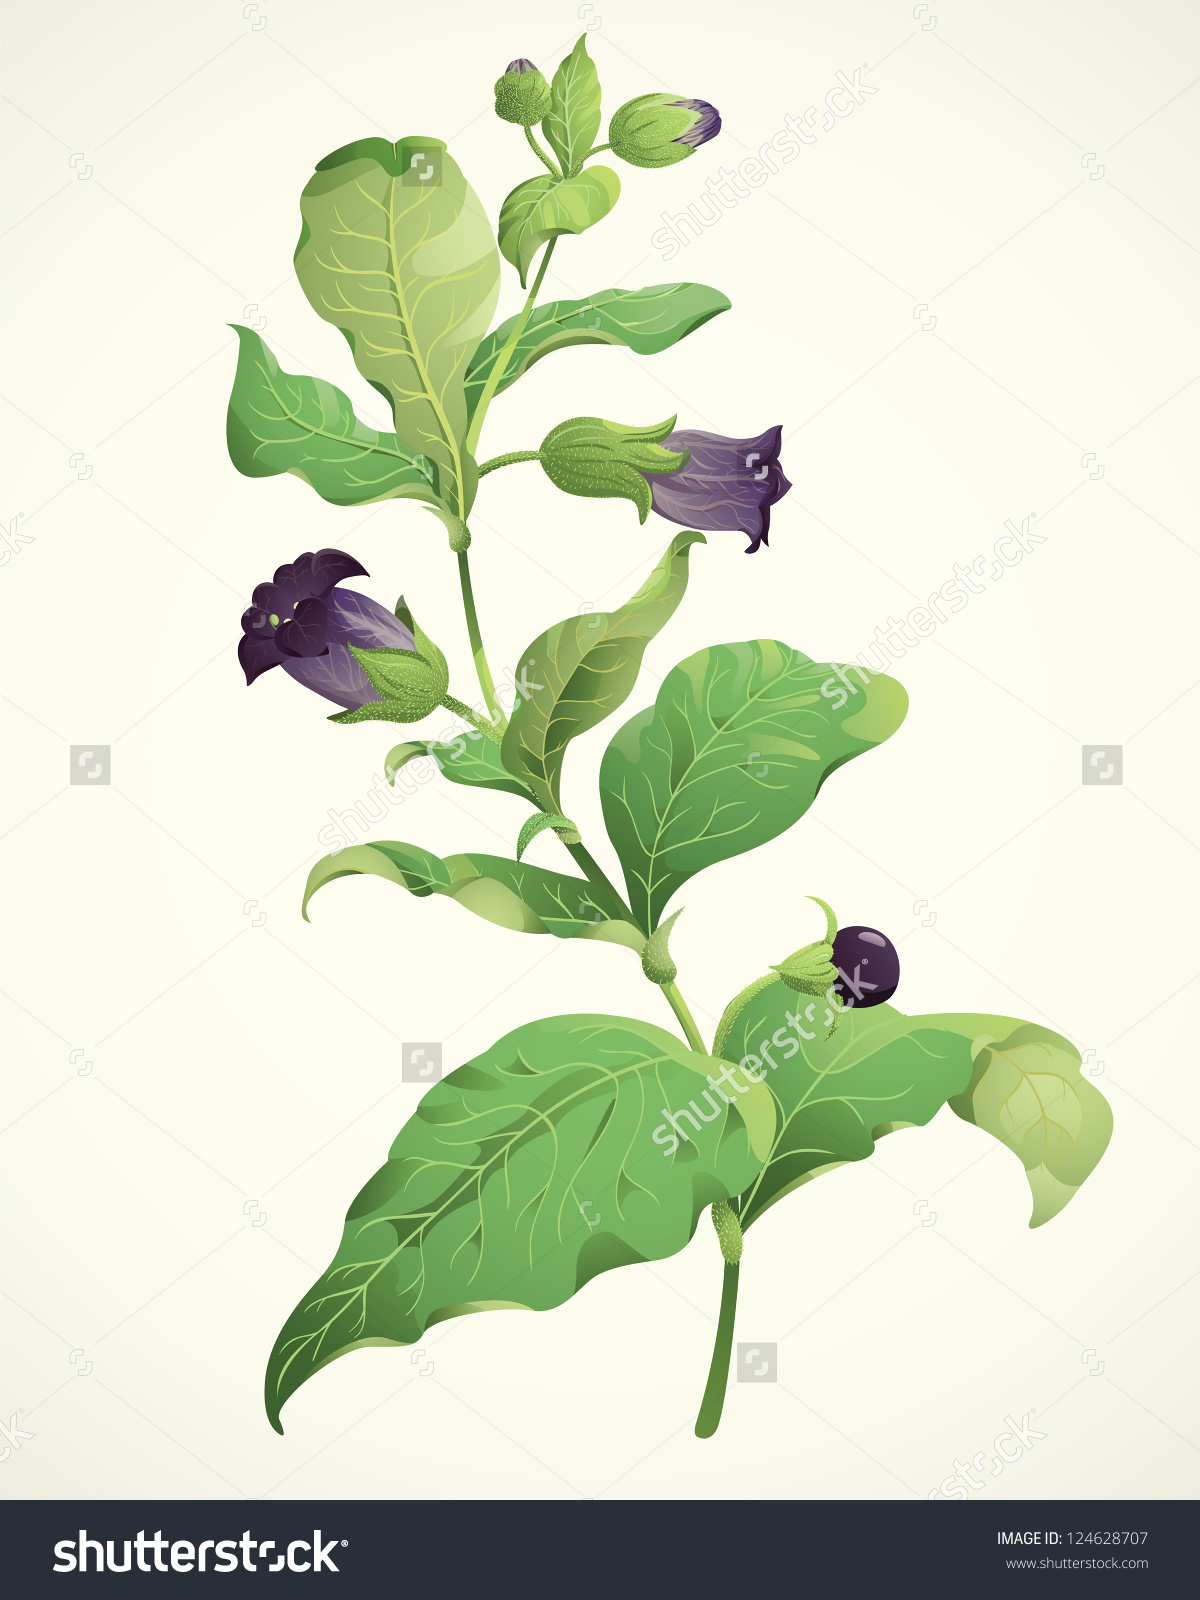 Deadly Poisonous Herb Belladonna Atropa Belladonna Stock Vector.